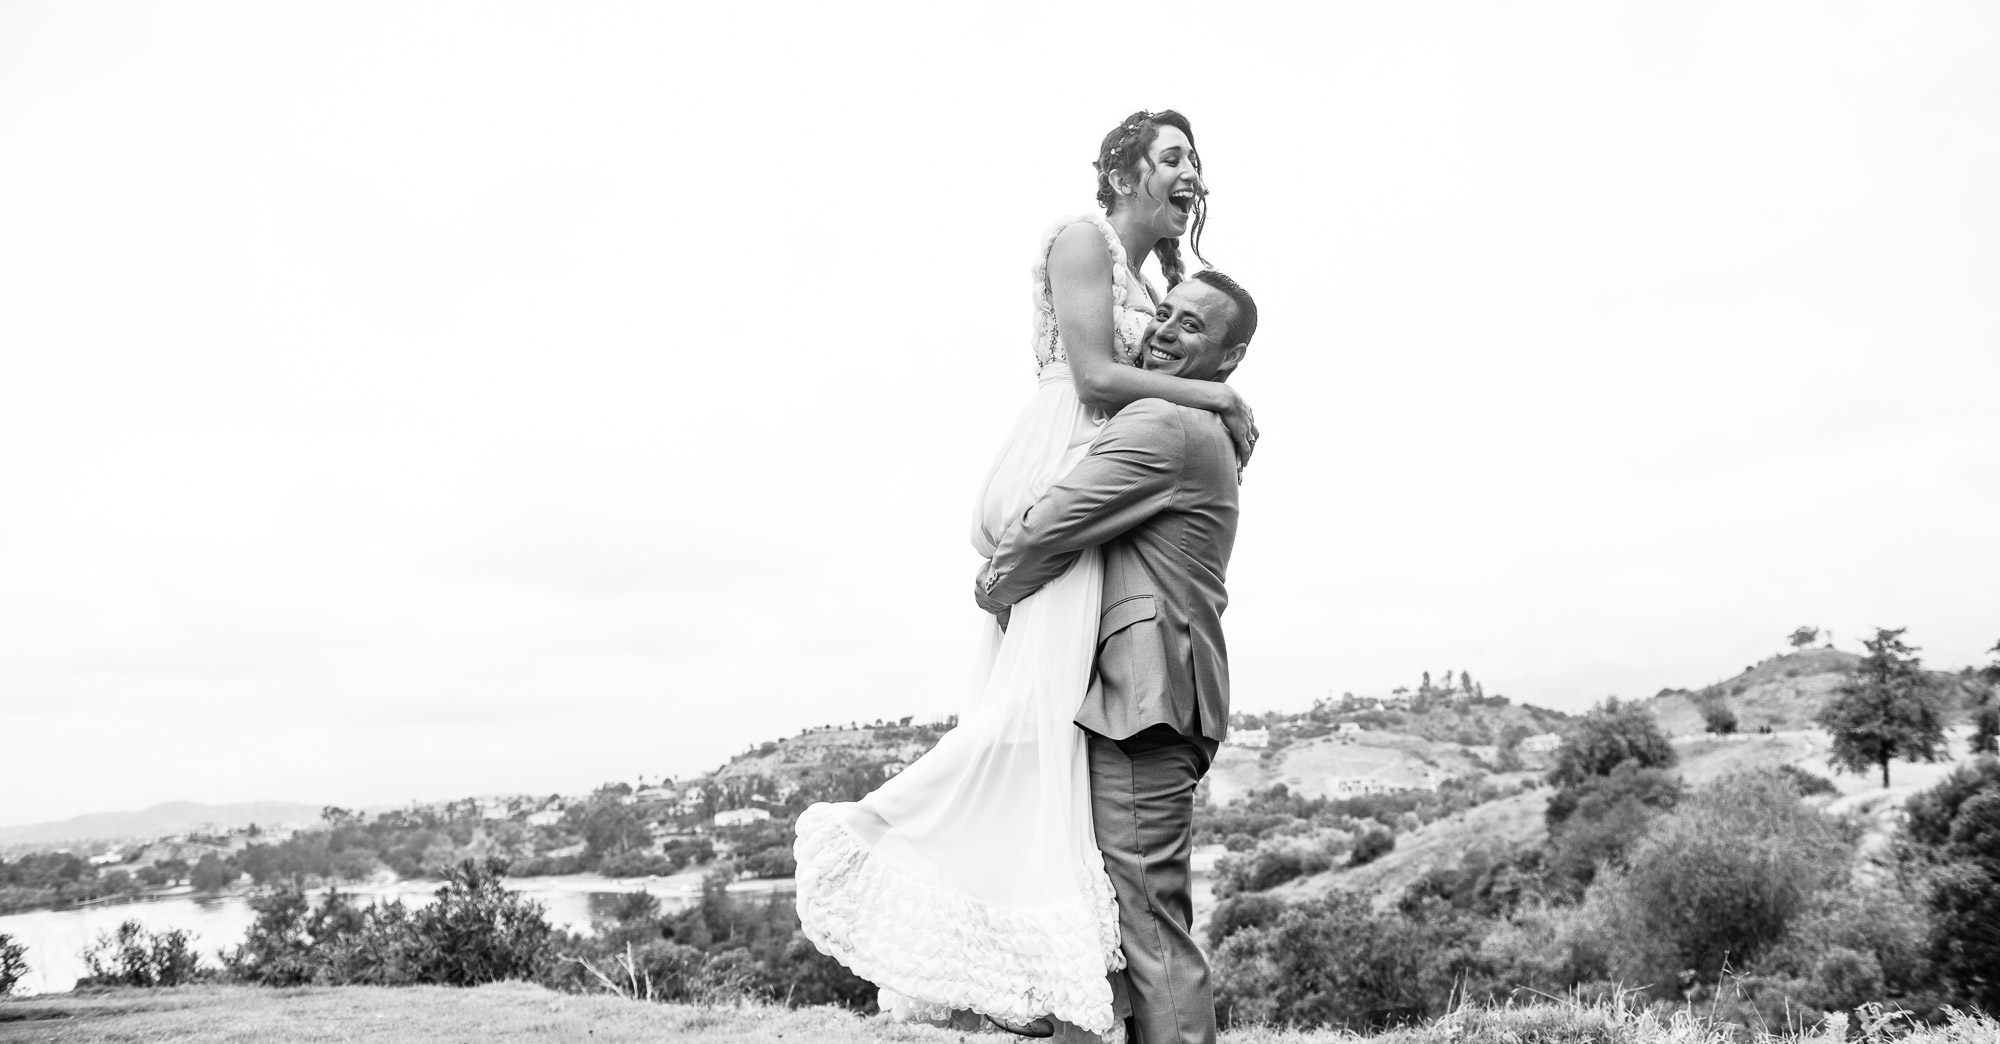 Nichole & Andrew's Los Angeles DIY Wedding featured slider image